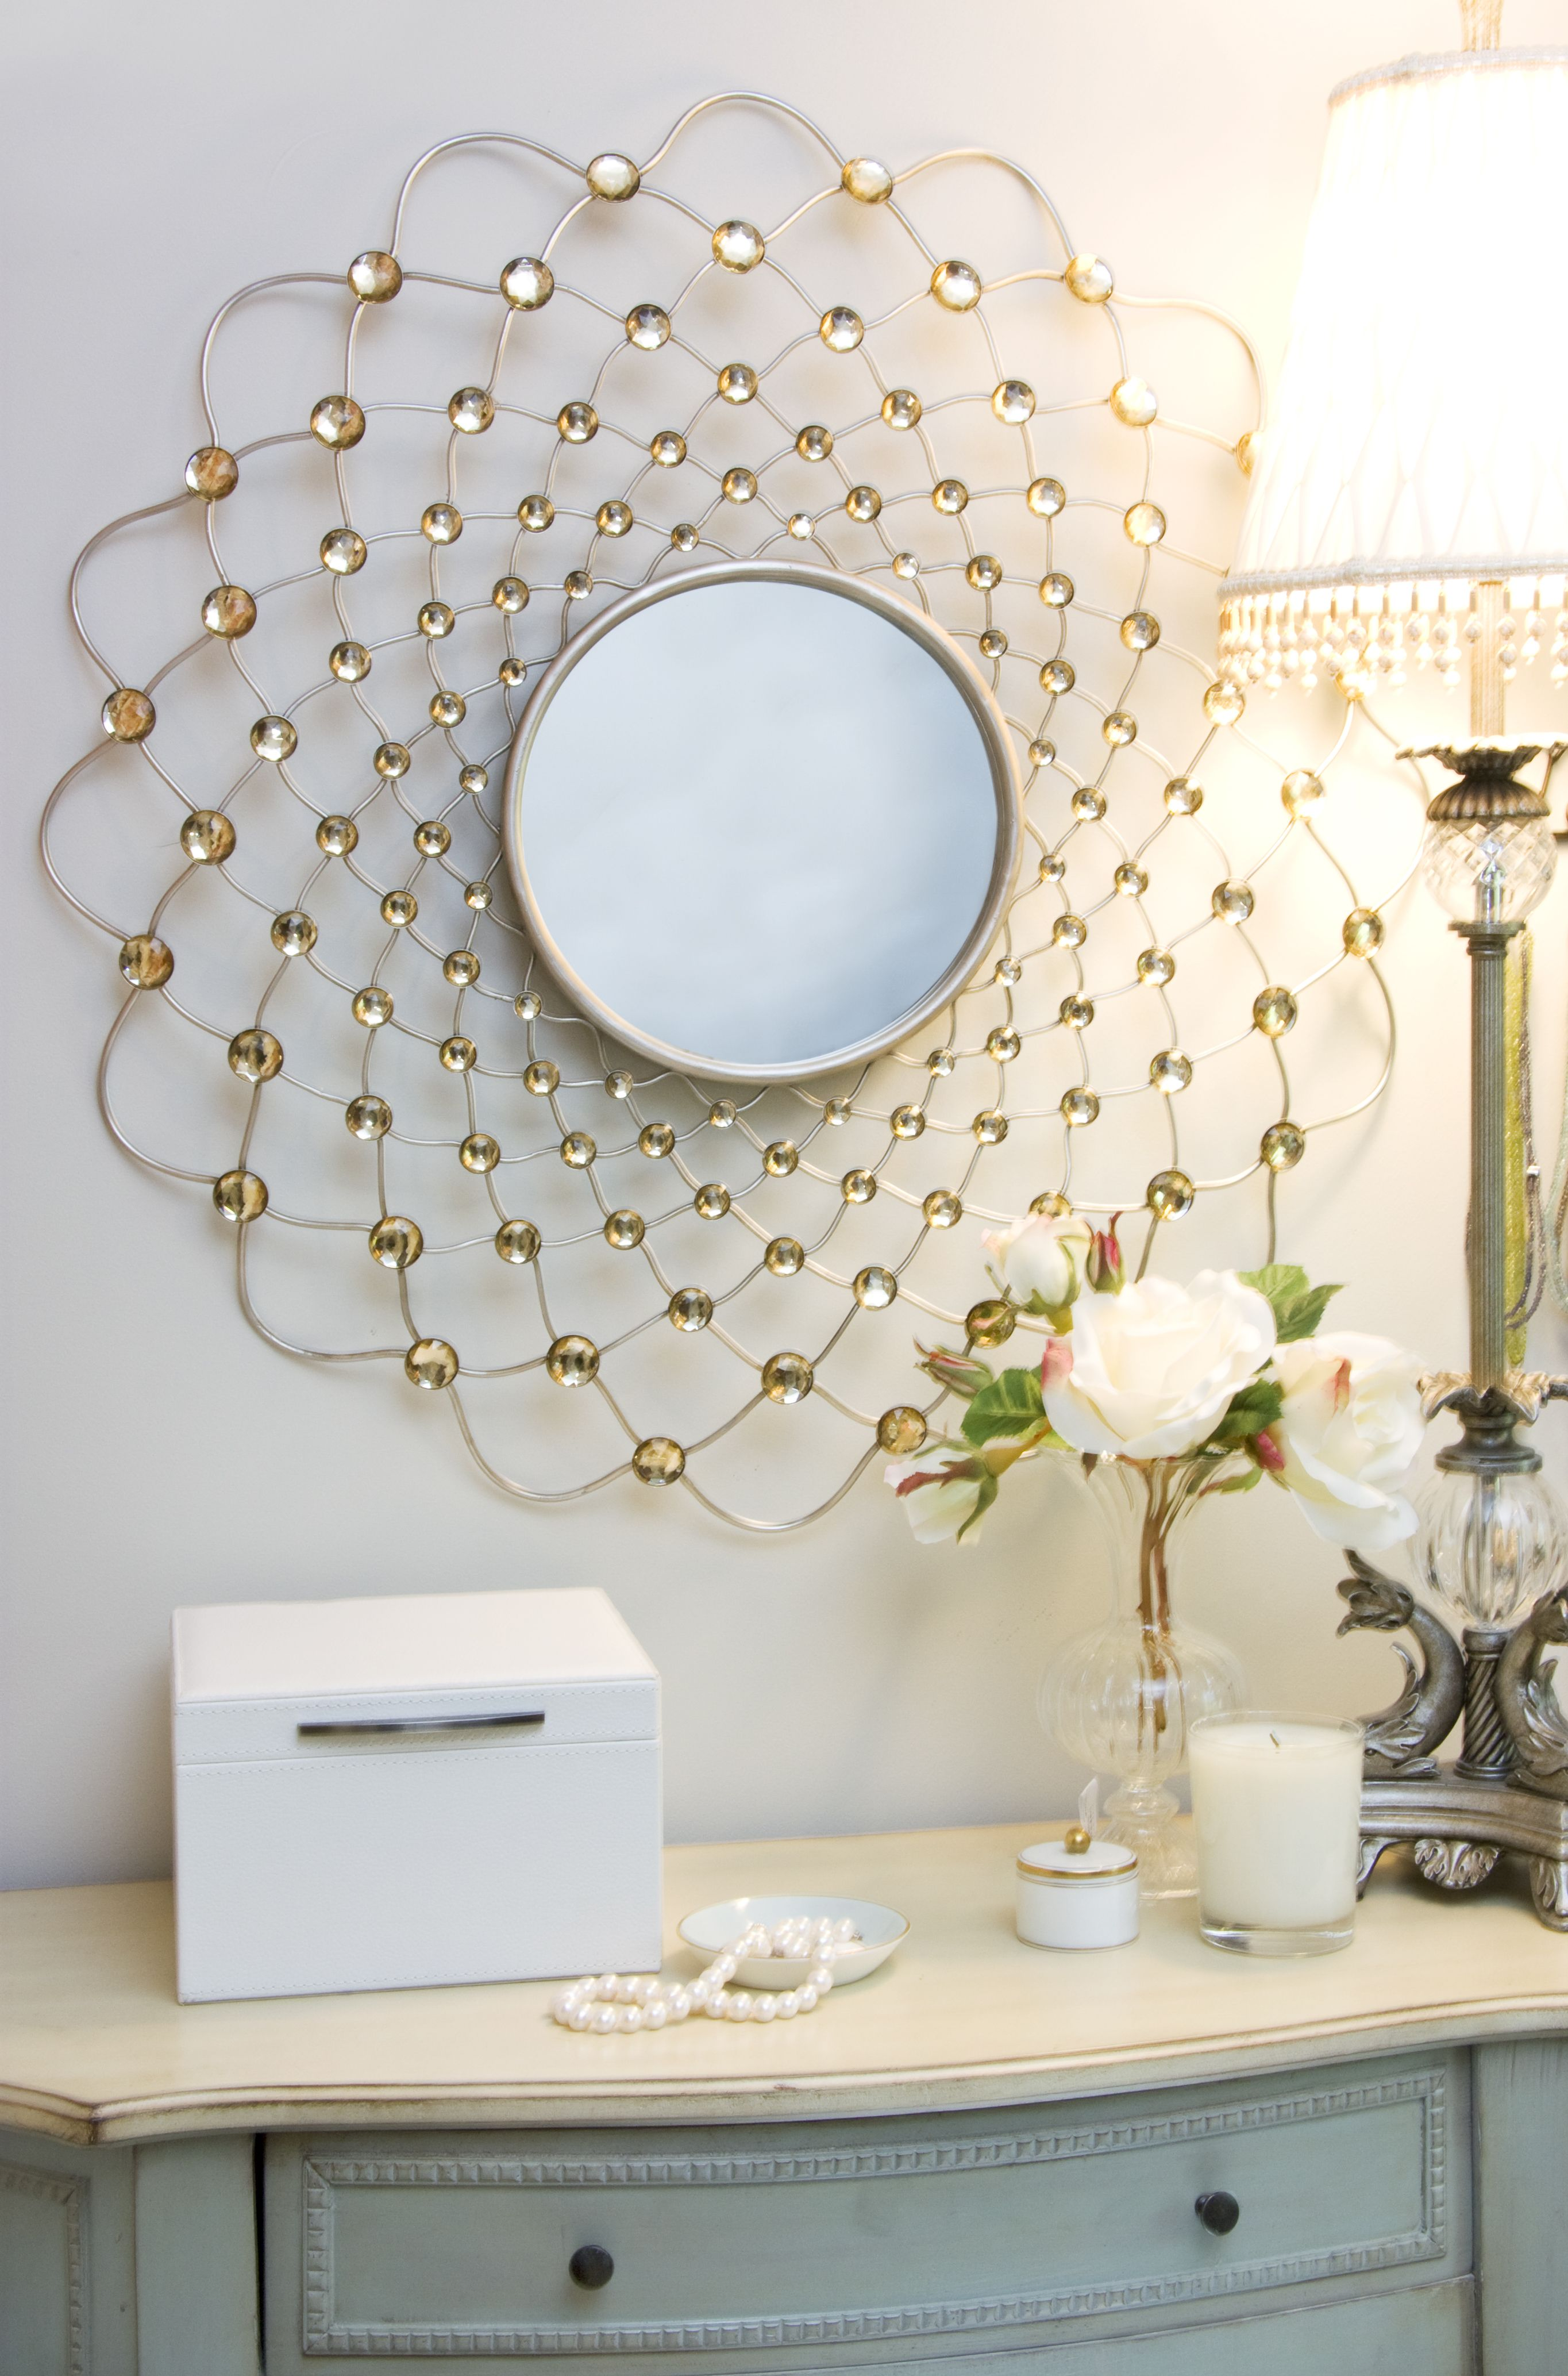 A Small Decorative Mirror Above A Dresser Adds Some Functionality For Putting Jewelry On Mirror Decor Round Mirror Bathroom Bedroom Decor